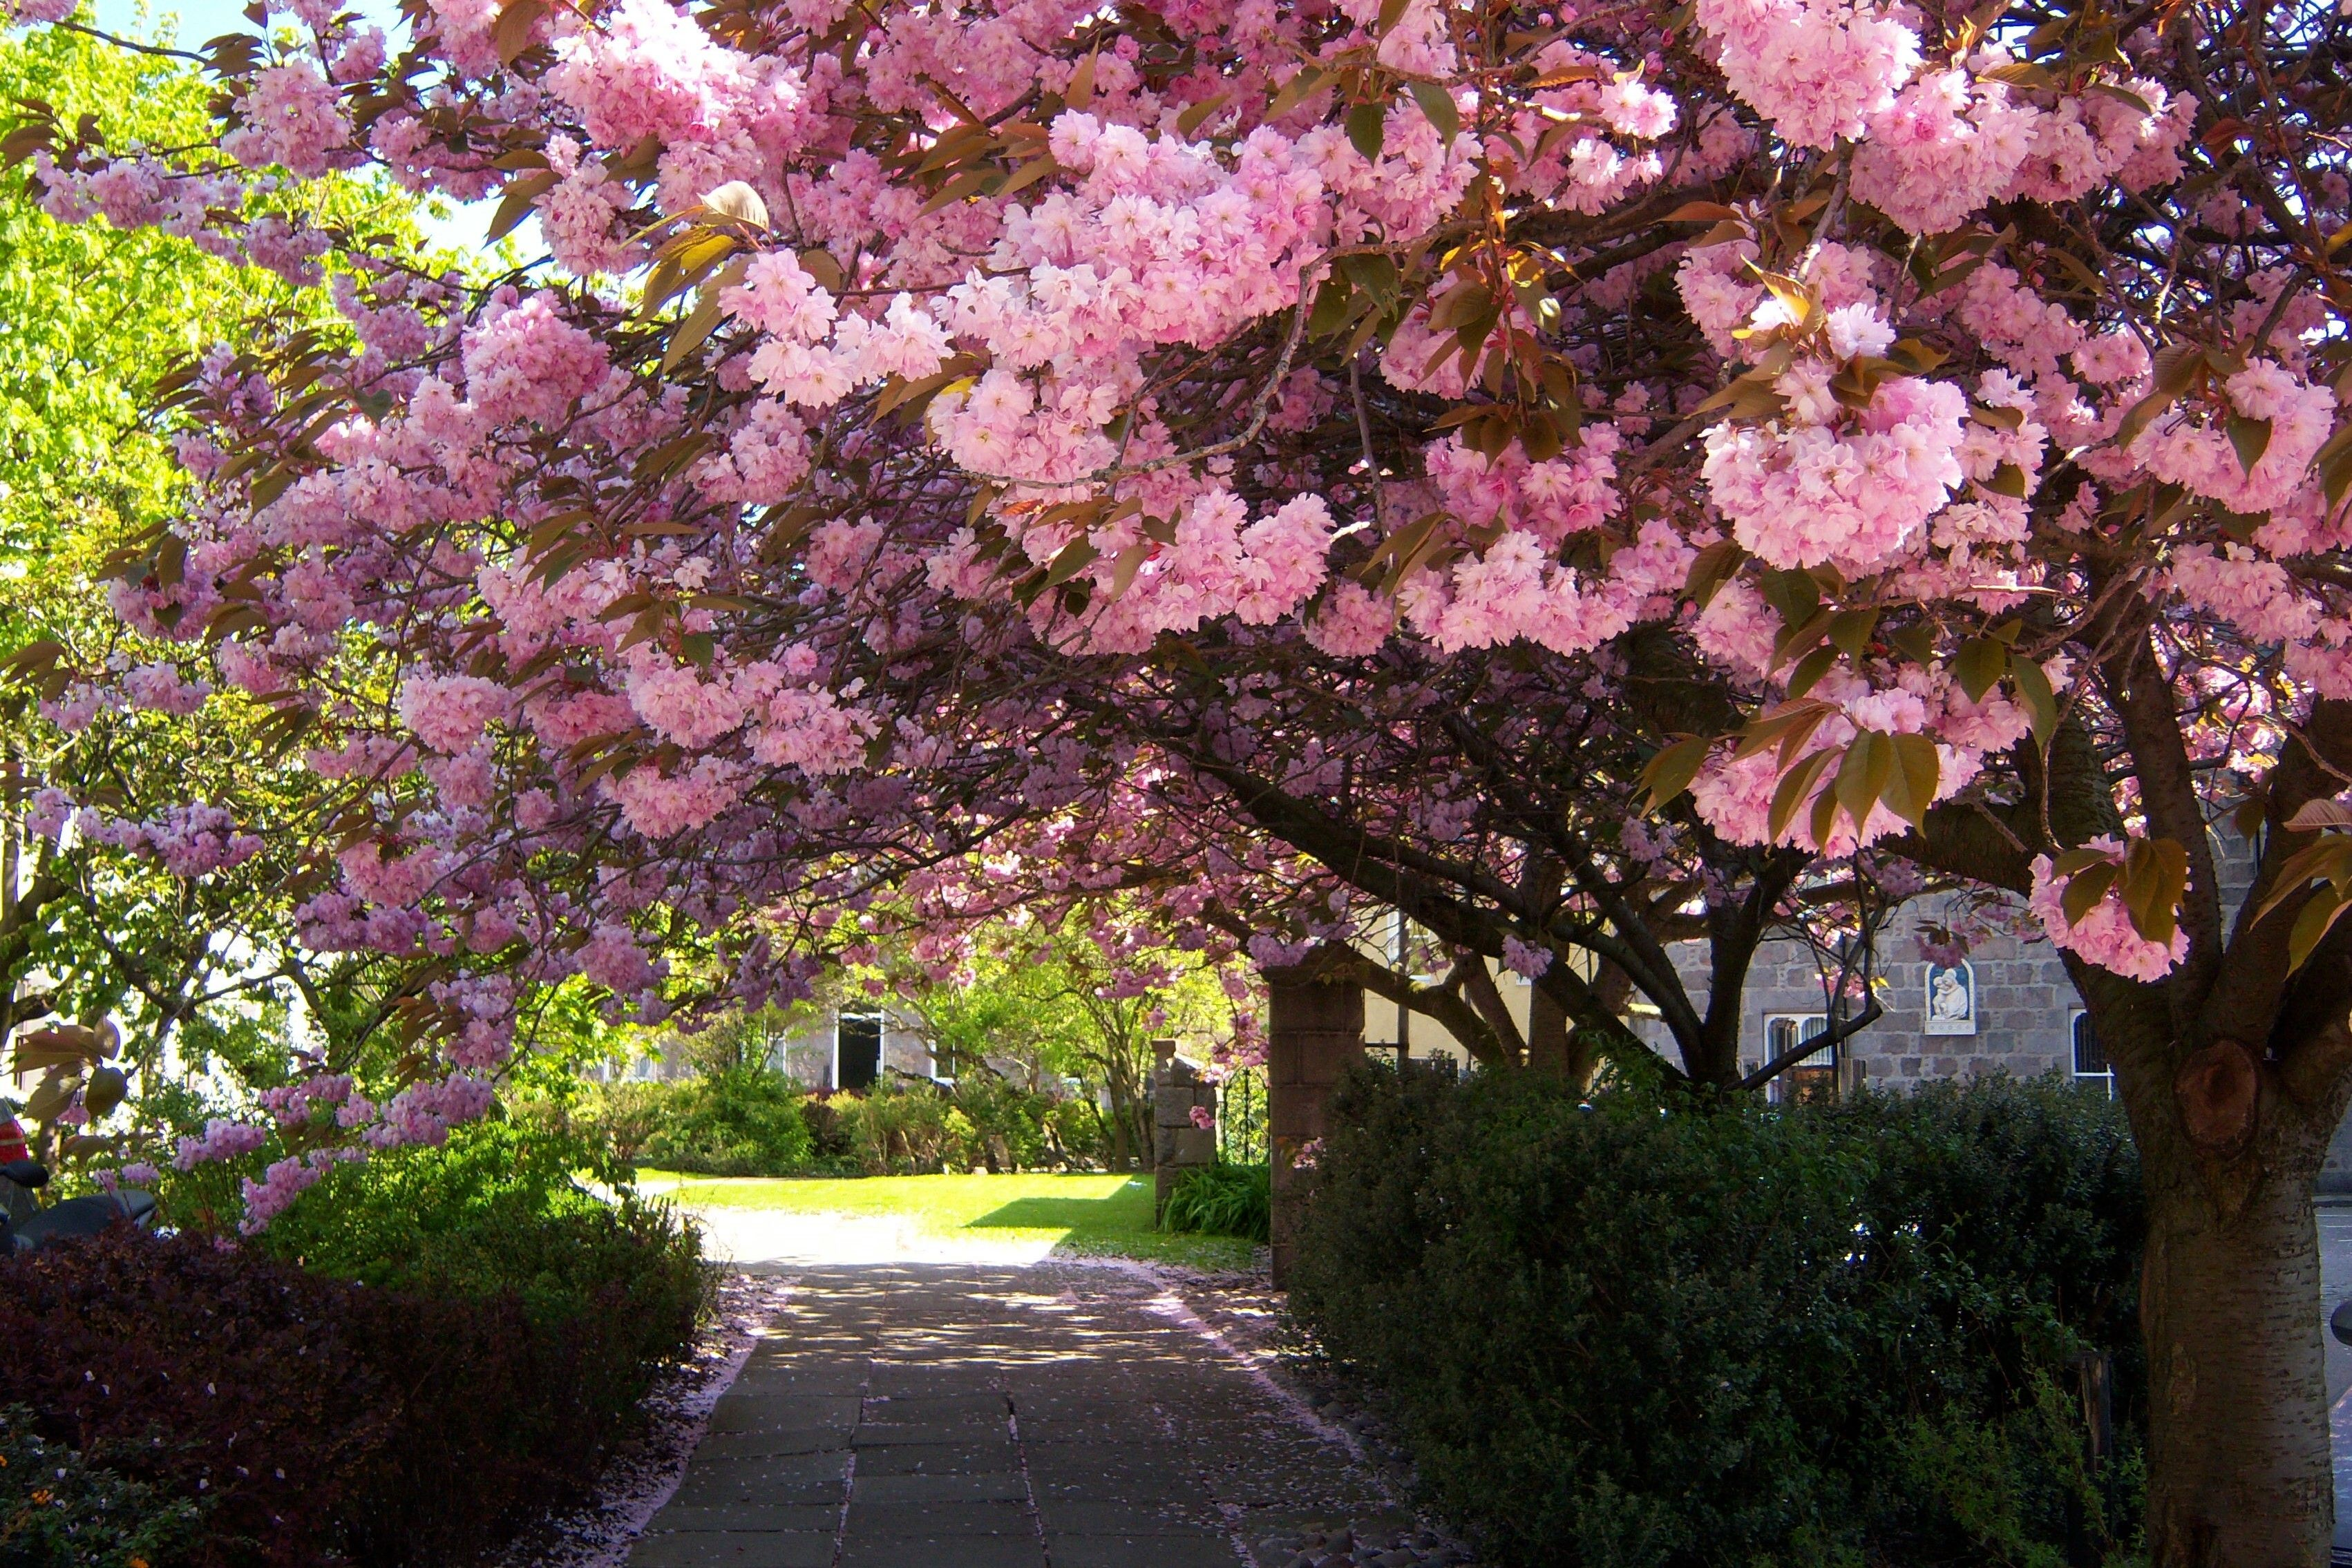 Cherry Trees Cherry Trees In Aberdeen Off Huntly Street Late May Blossom Cherry Blossom Tree Pear Blossom